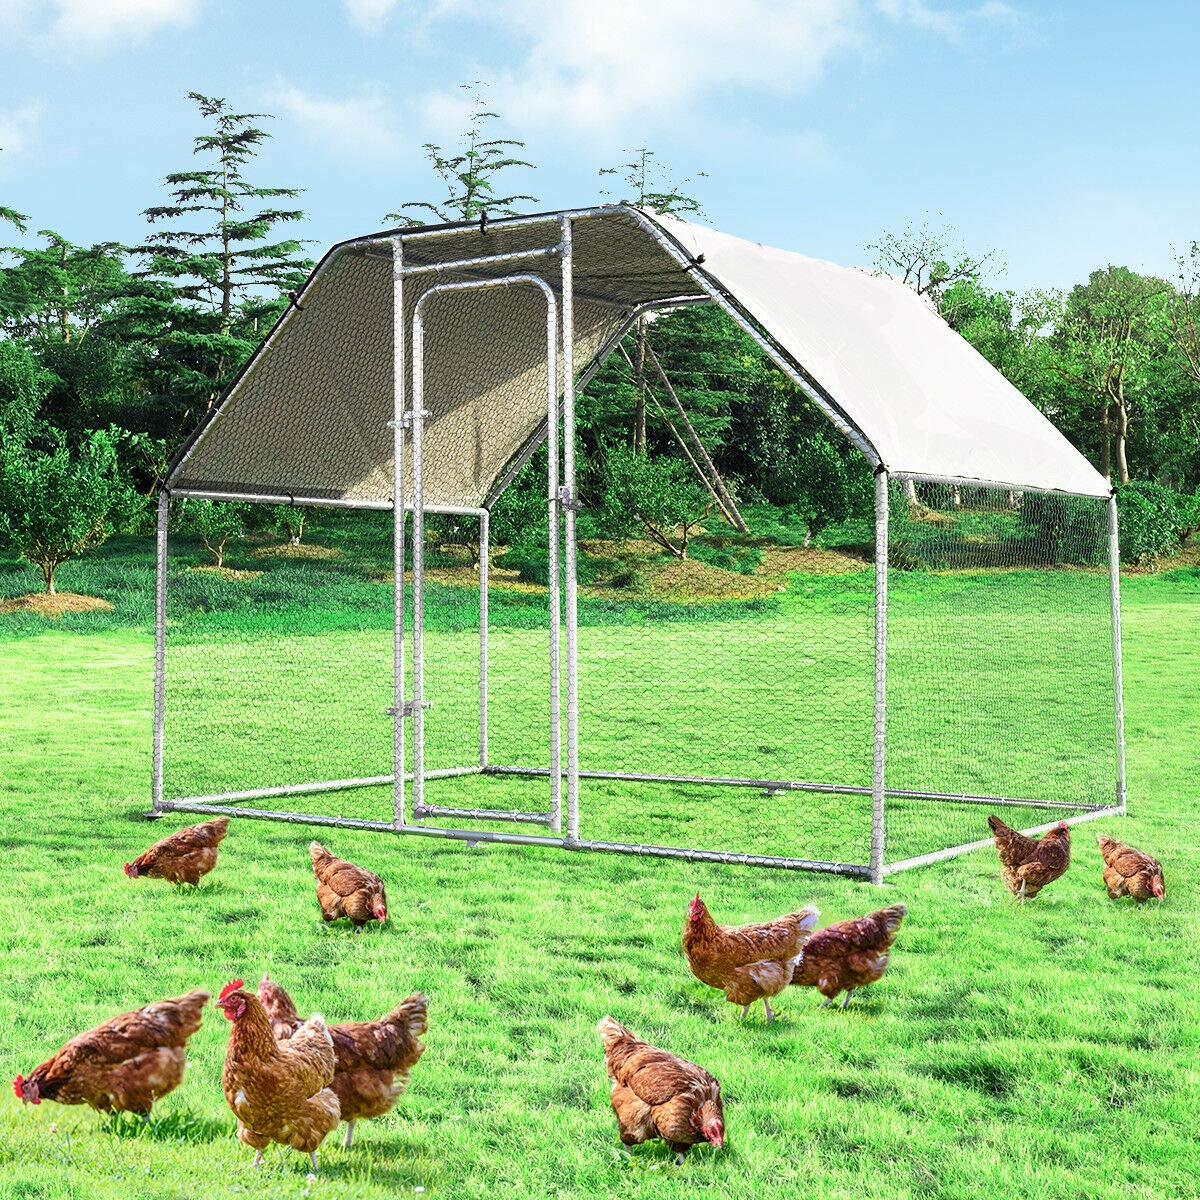 Giantex Large Metal Chicken Coop Walk-in Chicken Coops Hen Run House Shade Cage with Waterproof and Anti-Ultraviolet Cover for Outdoor Backyard Farm Use Poultry Cage (9.5' Lx 6.5' Wx 6 H') by Giantex